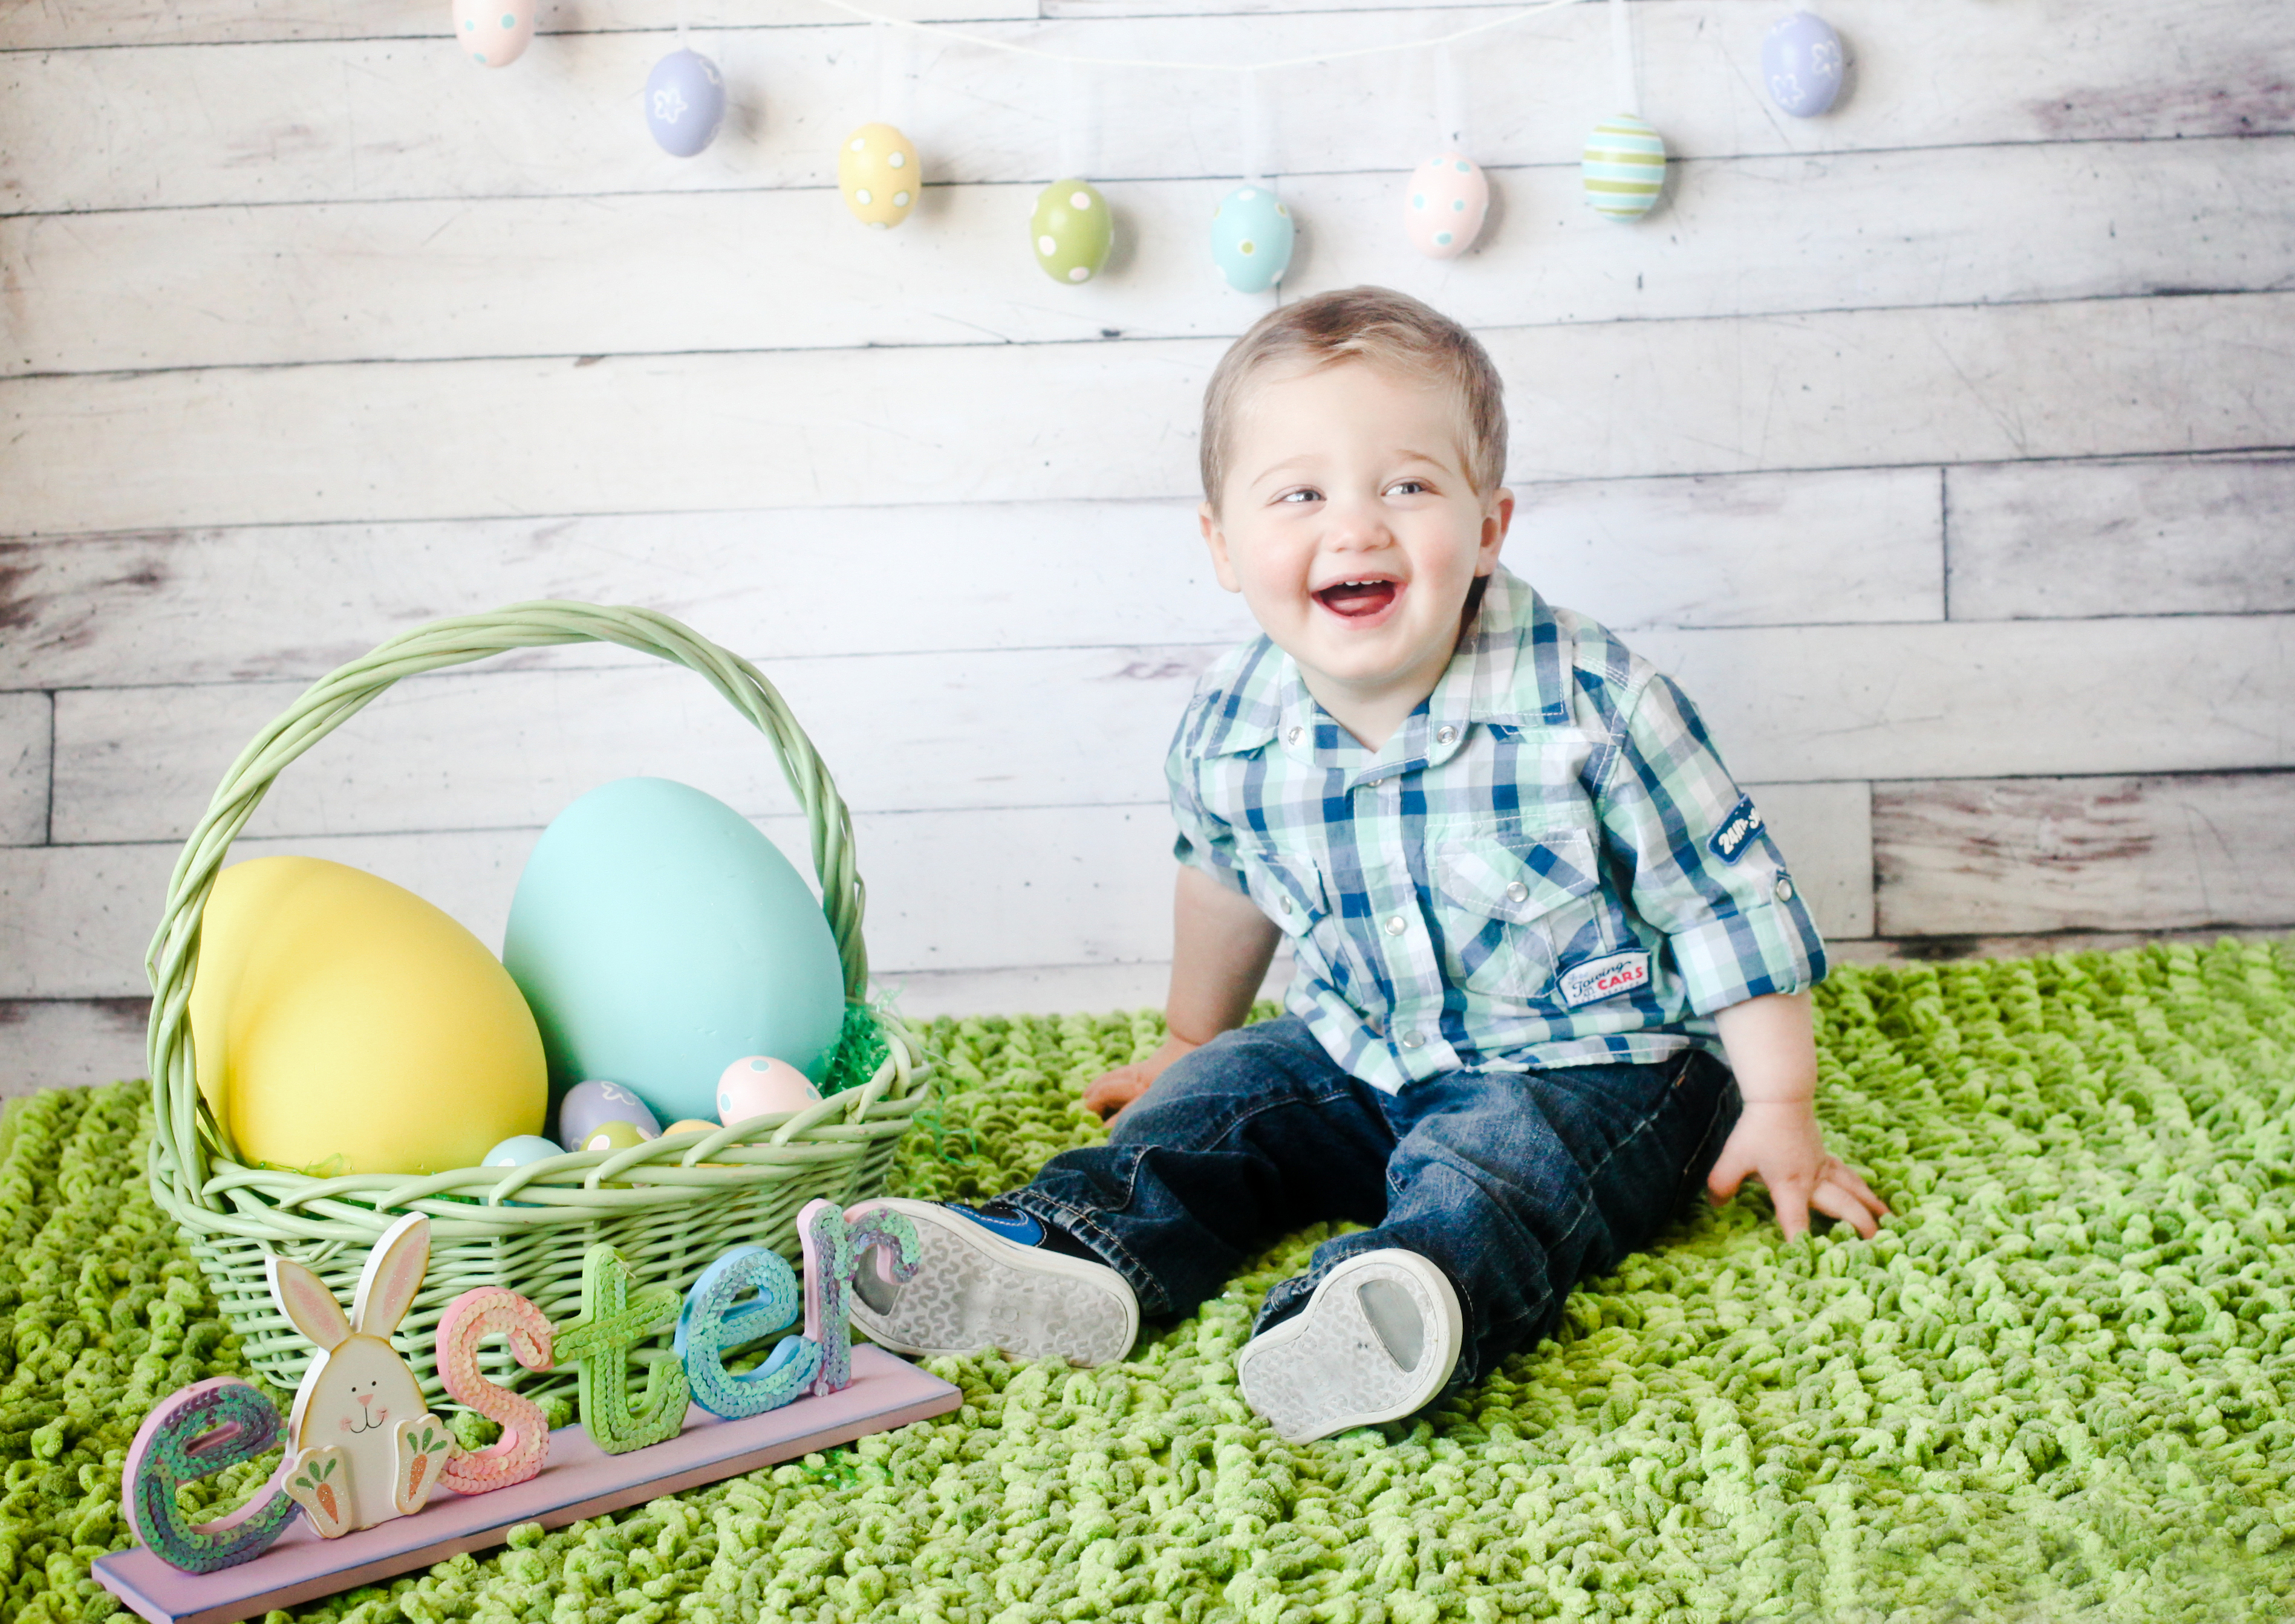 1000+ images about Easter Photography on Pinterest   Bunnies ...